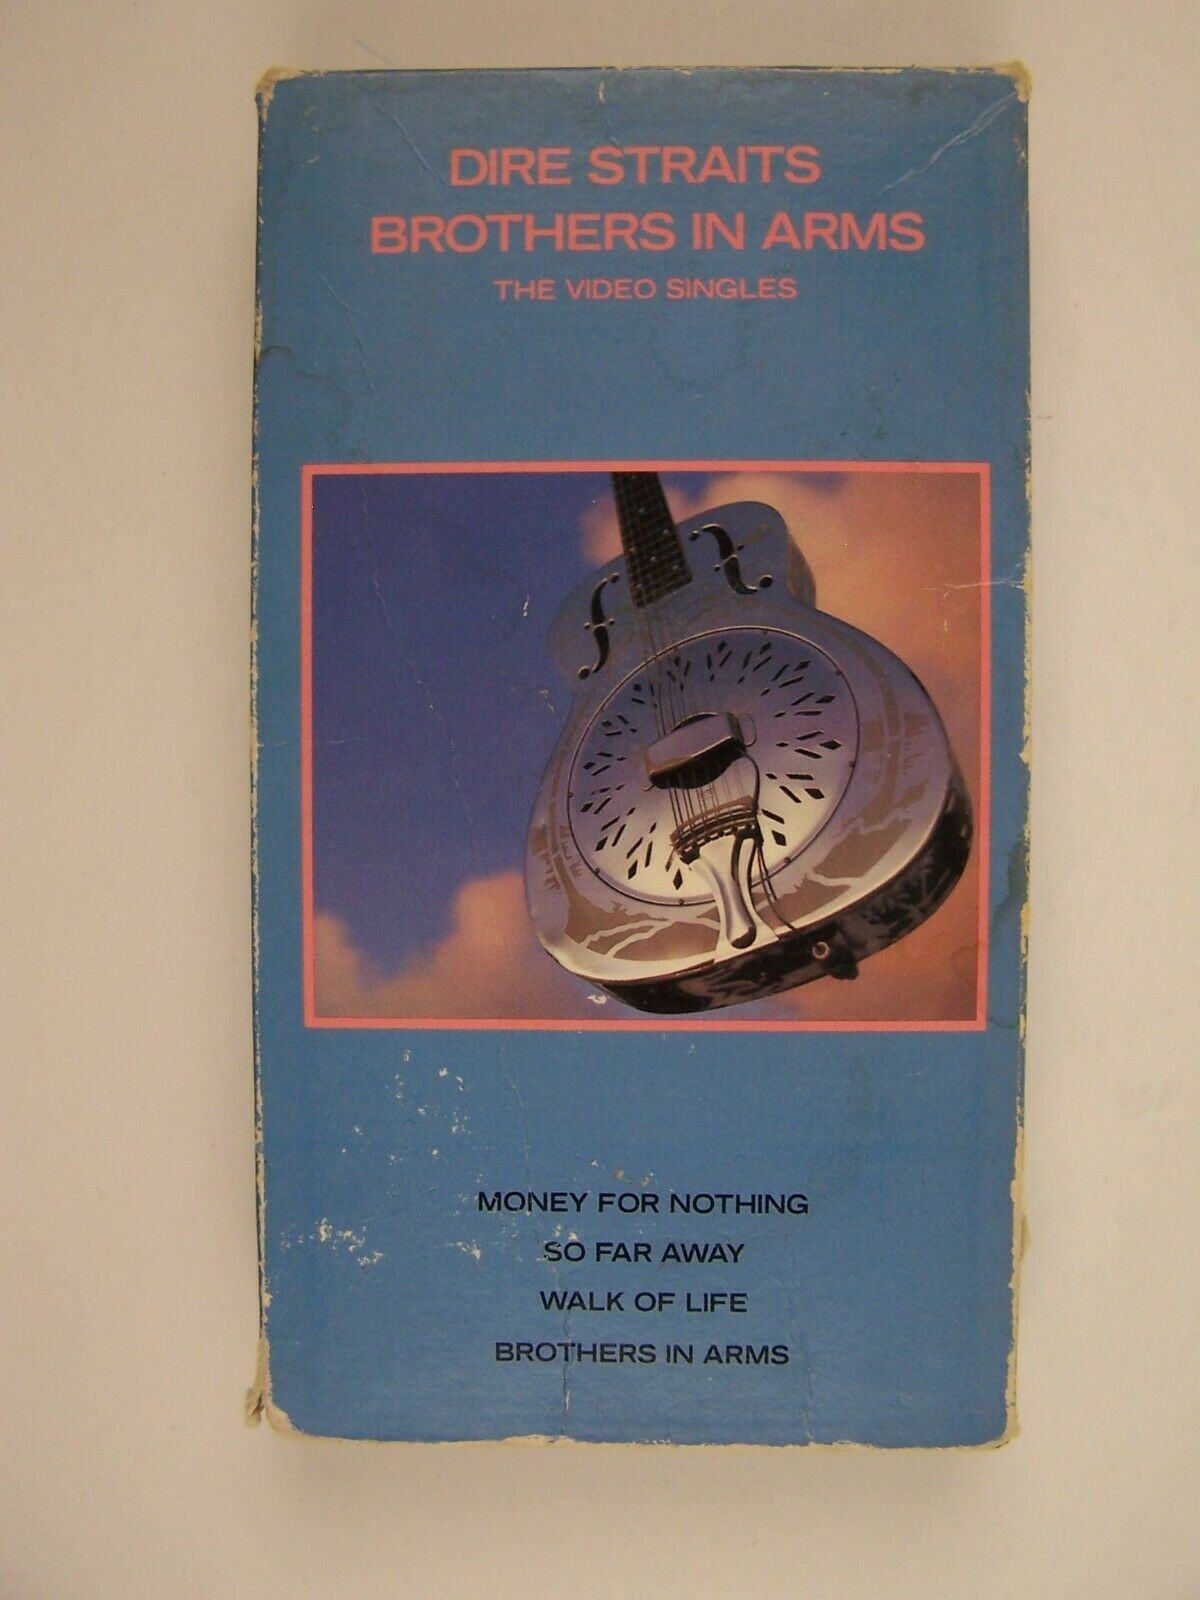 Dire Straits Brothers in Arms VHS 75993811933